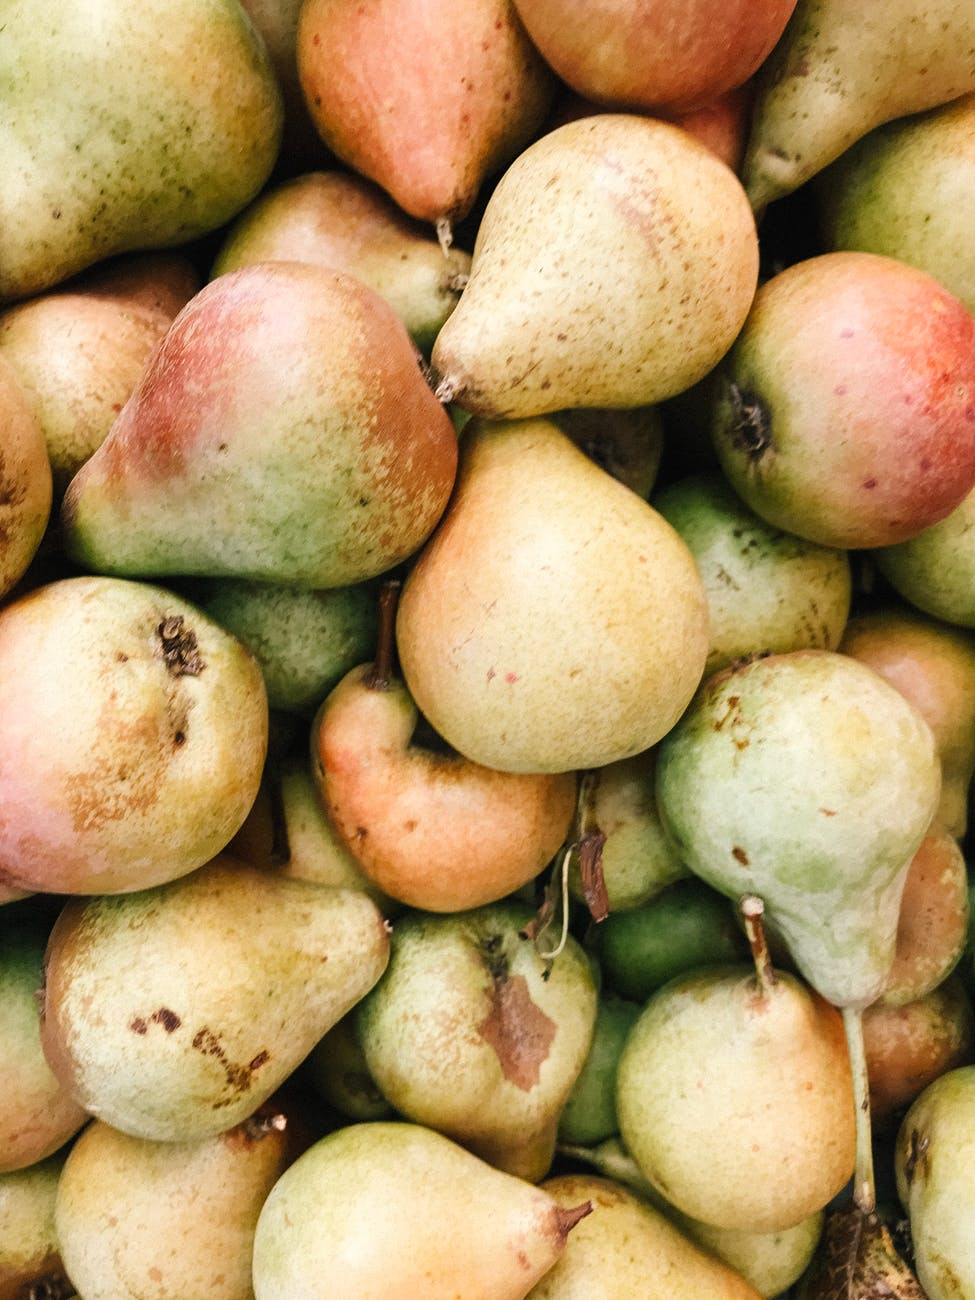 close up photo of bunch of pears